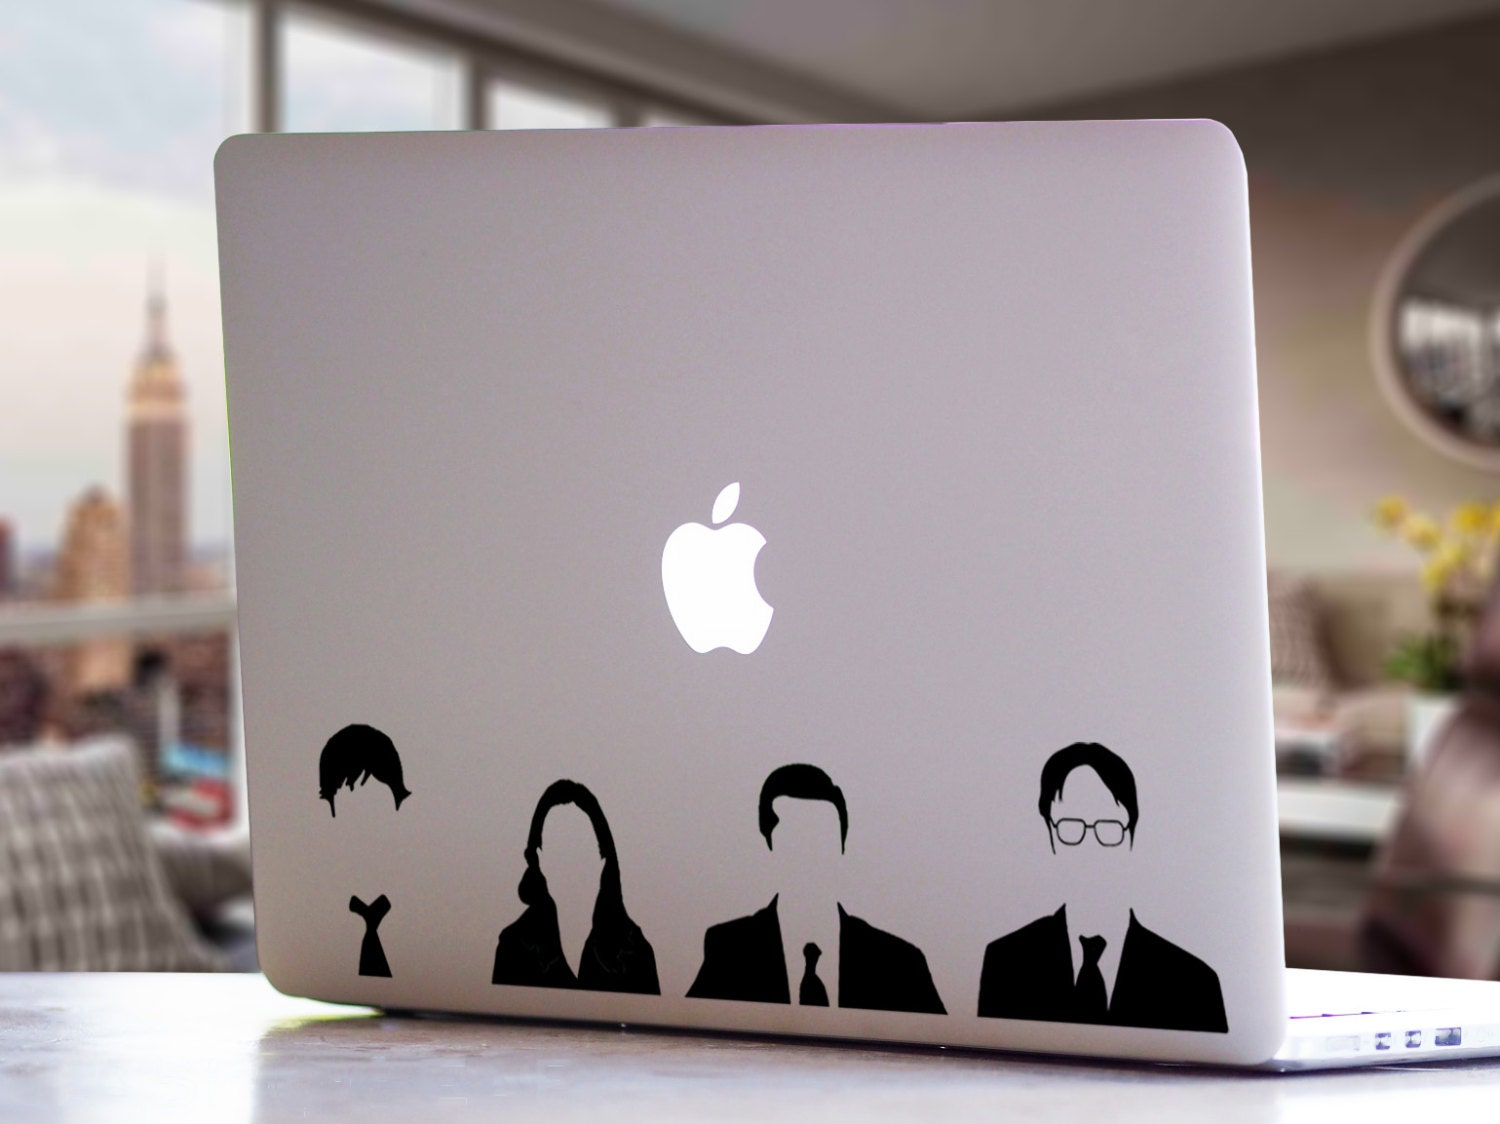 The Office Tv Show Michael Jim Pam Dwight Macbook